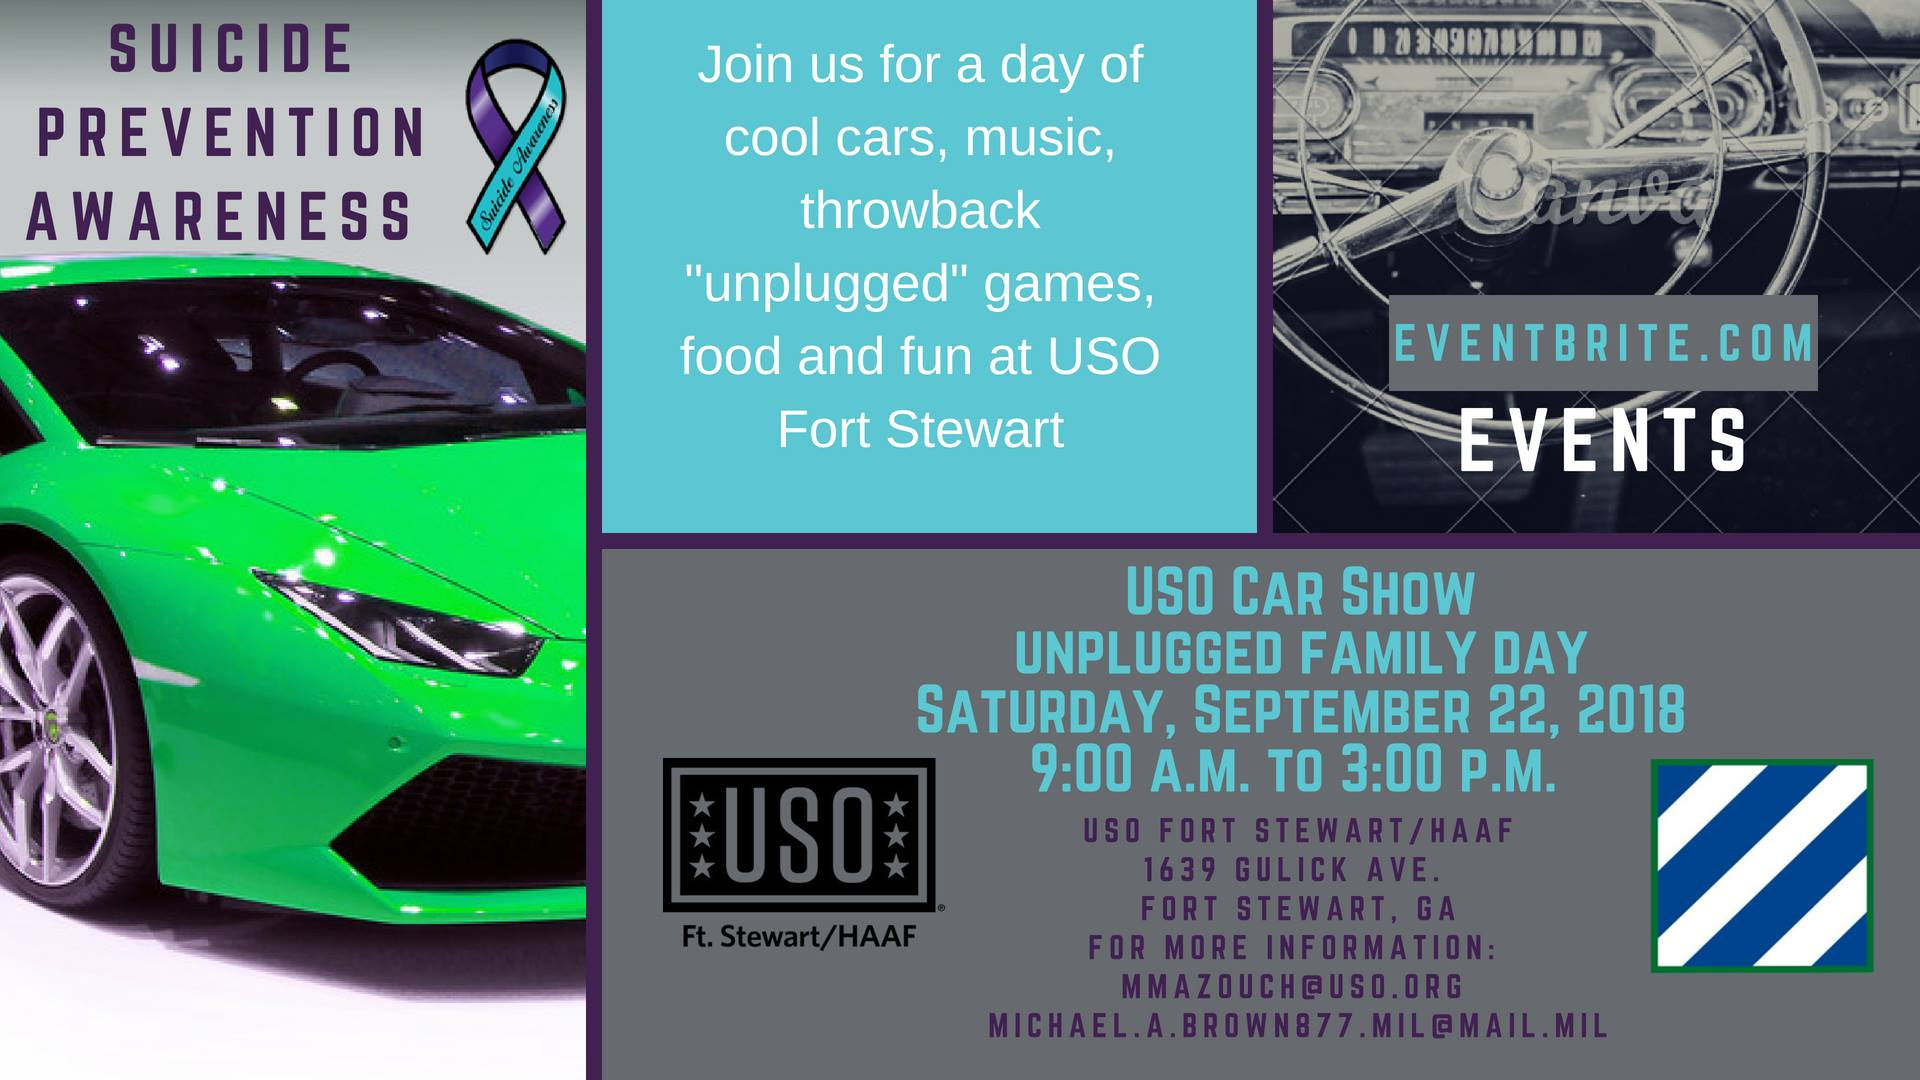 USO Car Show Unplugged Family DayLiberty County Georgia - Car show games